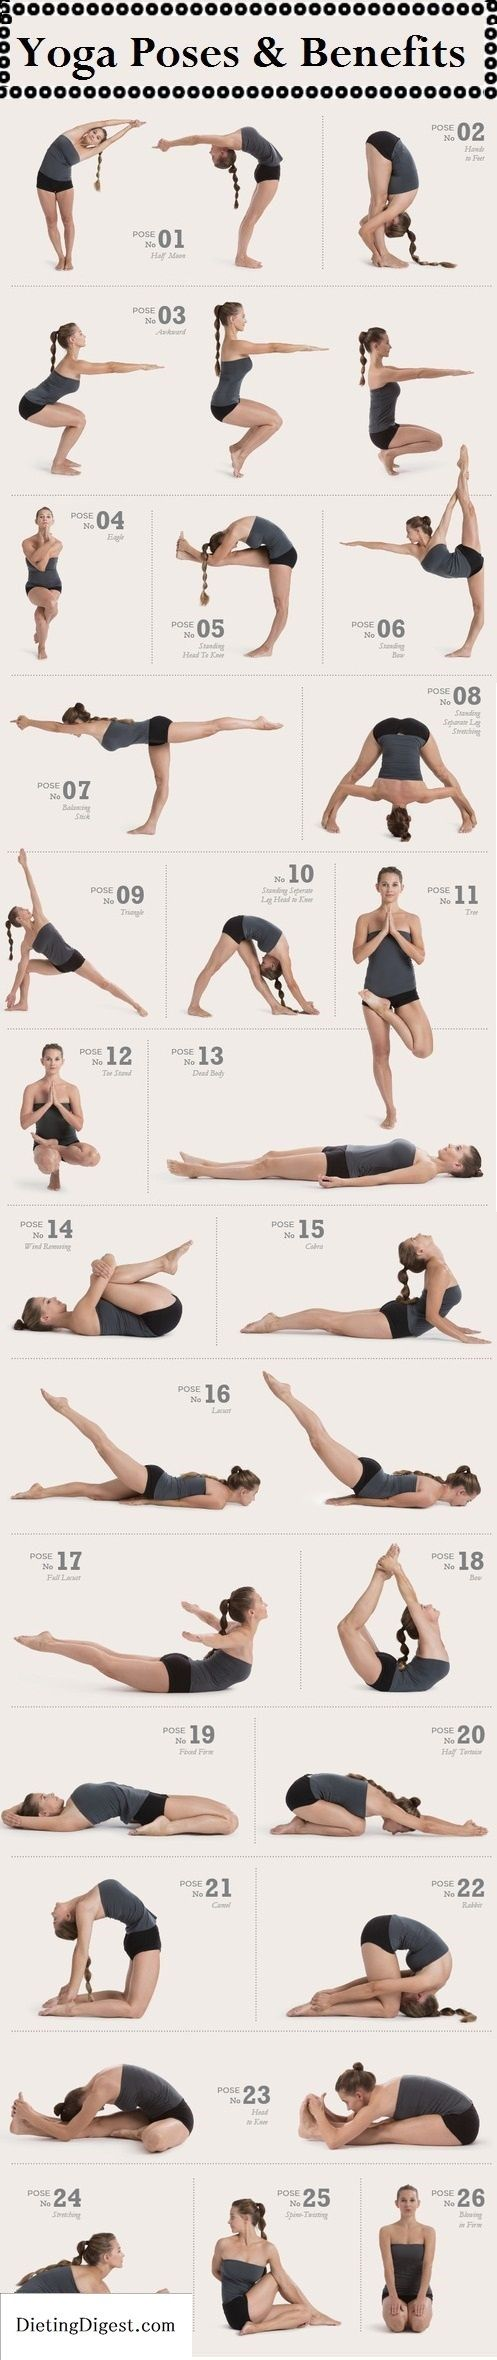 Yoga poses Check out Dieting Digest